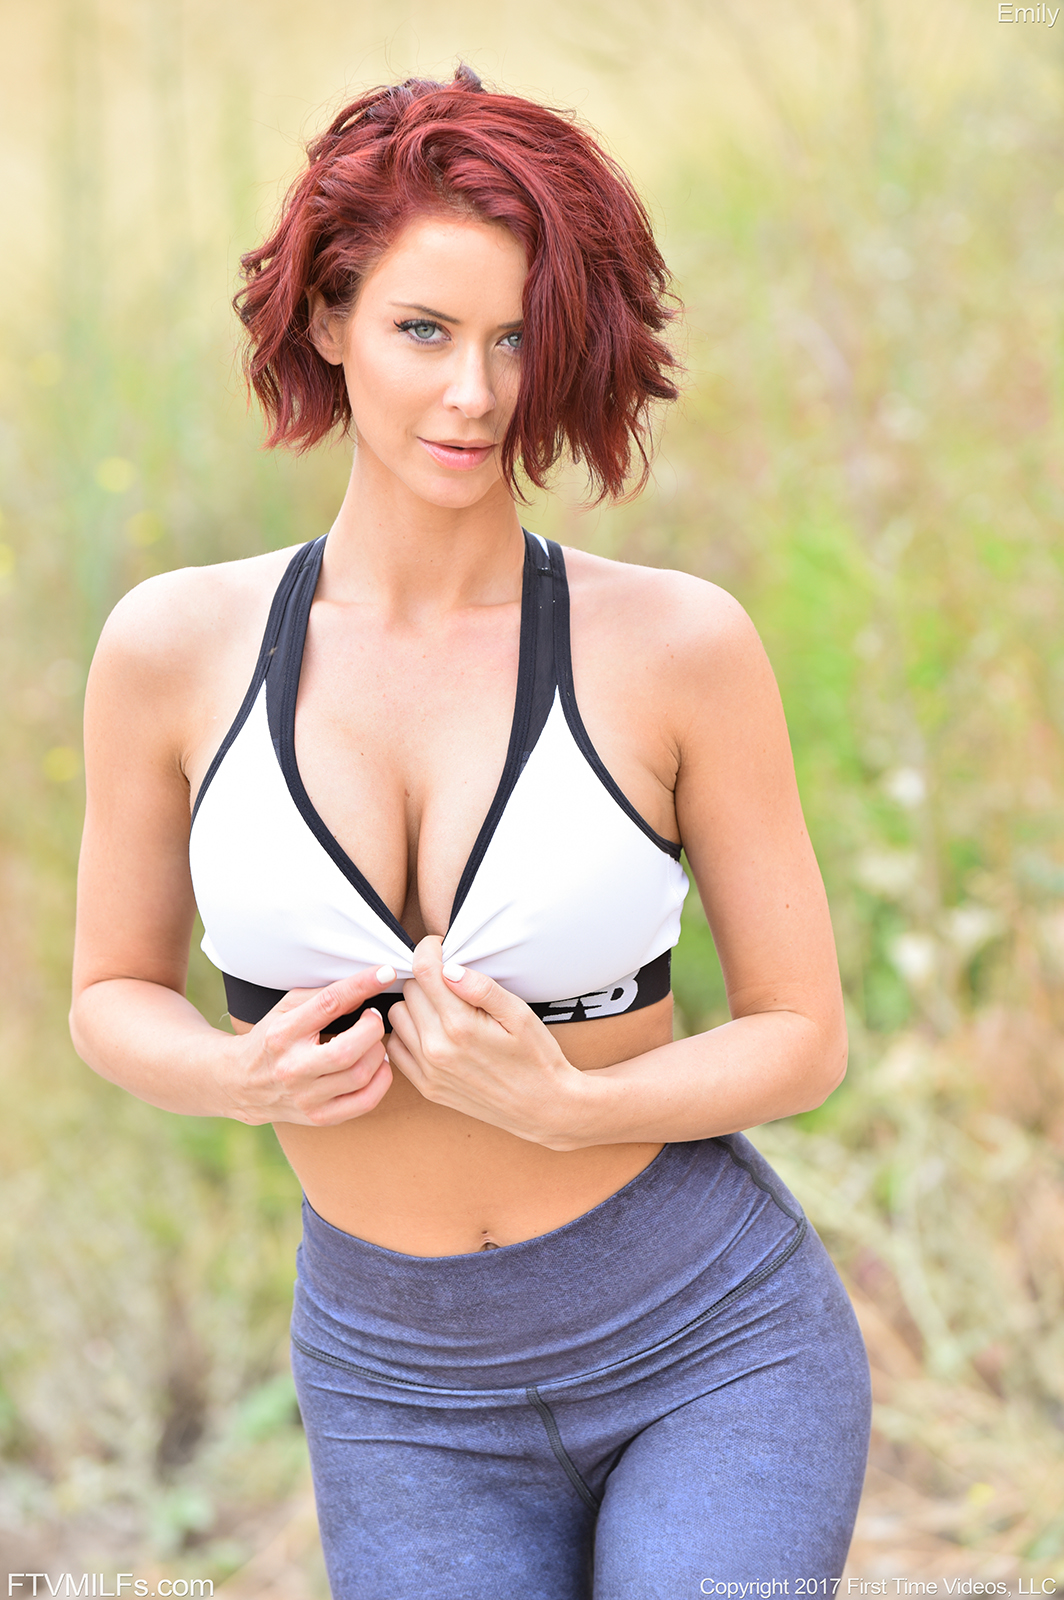 static ftvmilfs galleries emily her morning workout 1